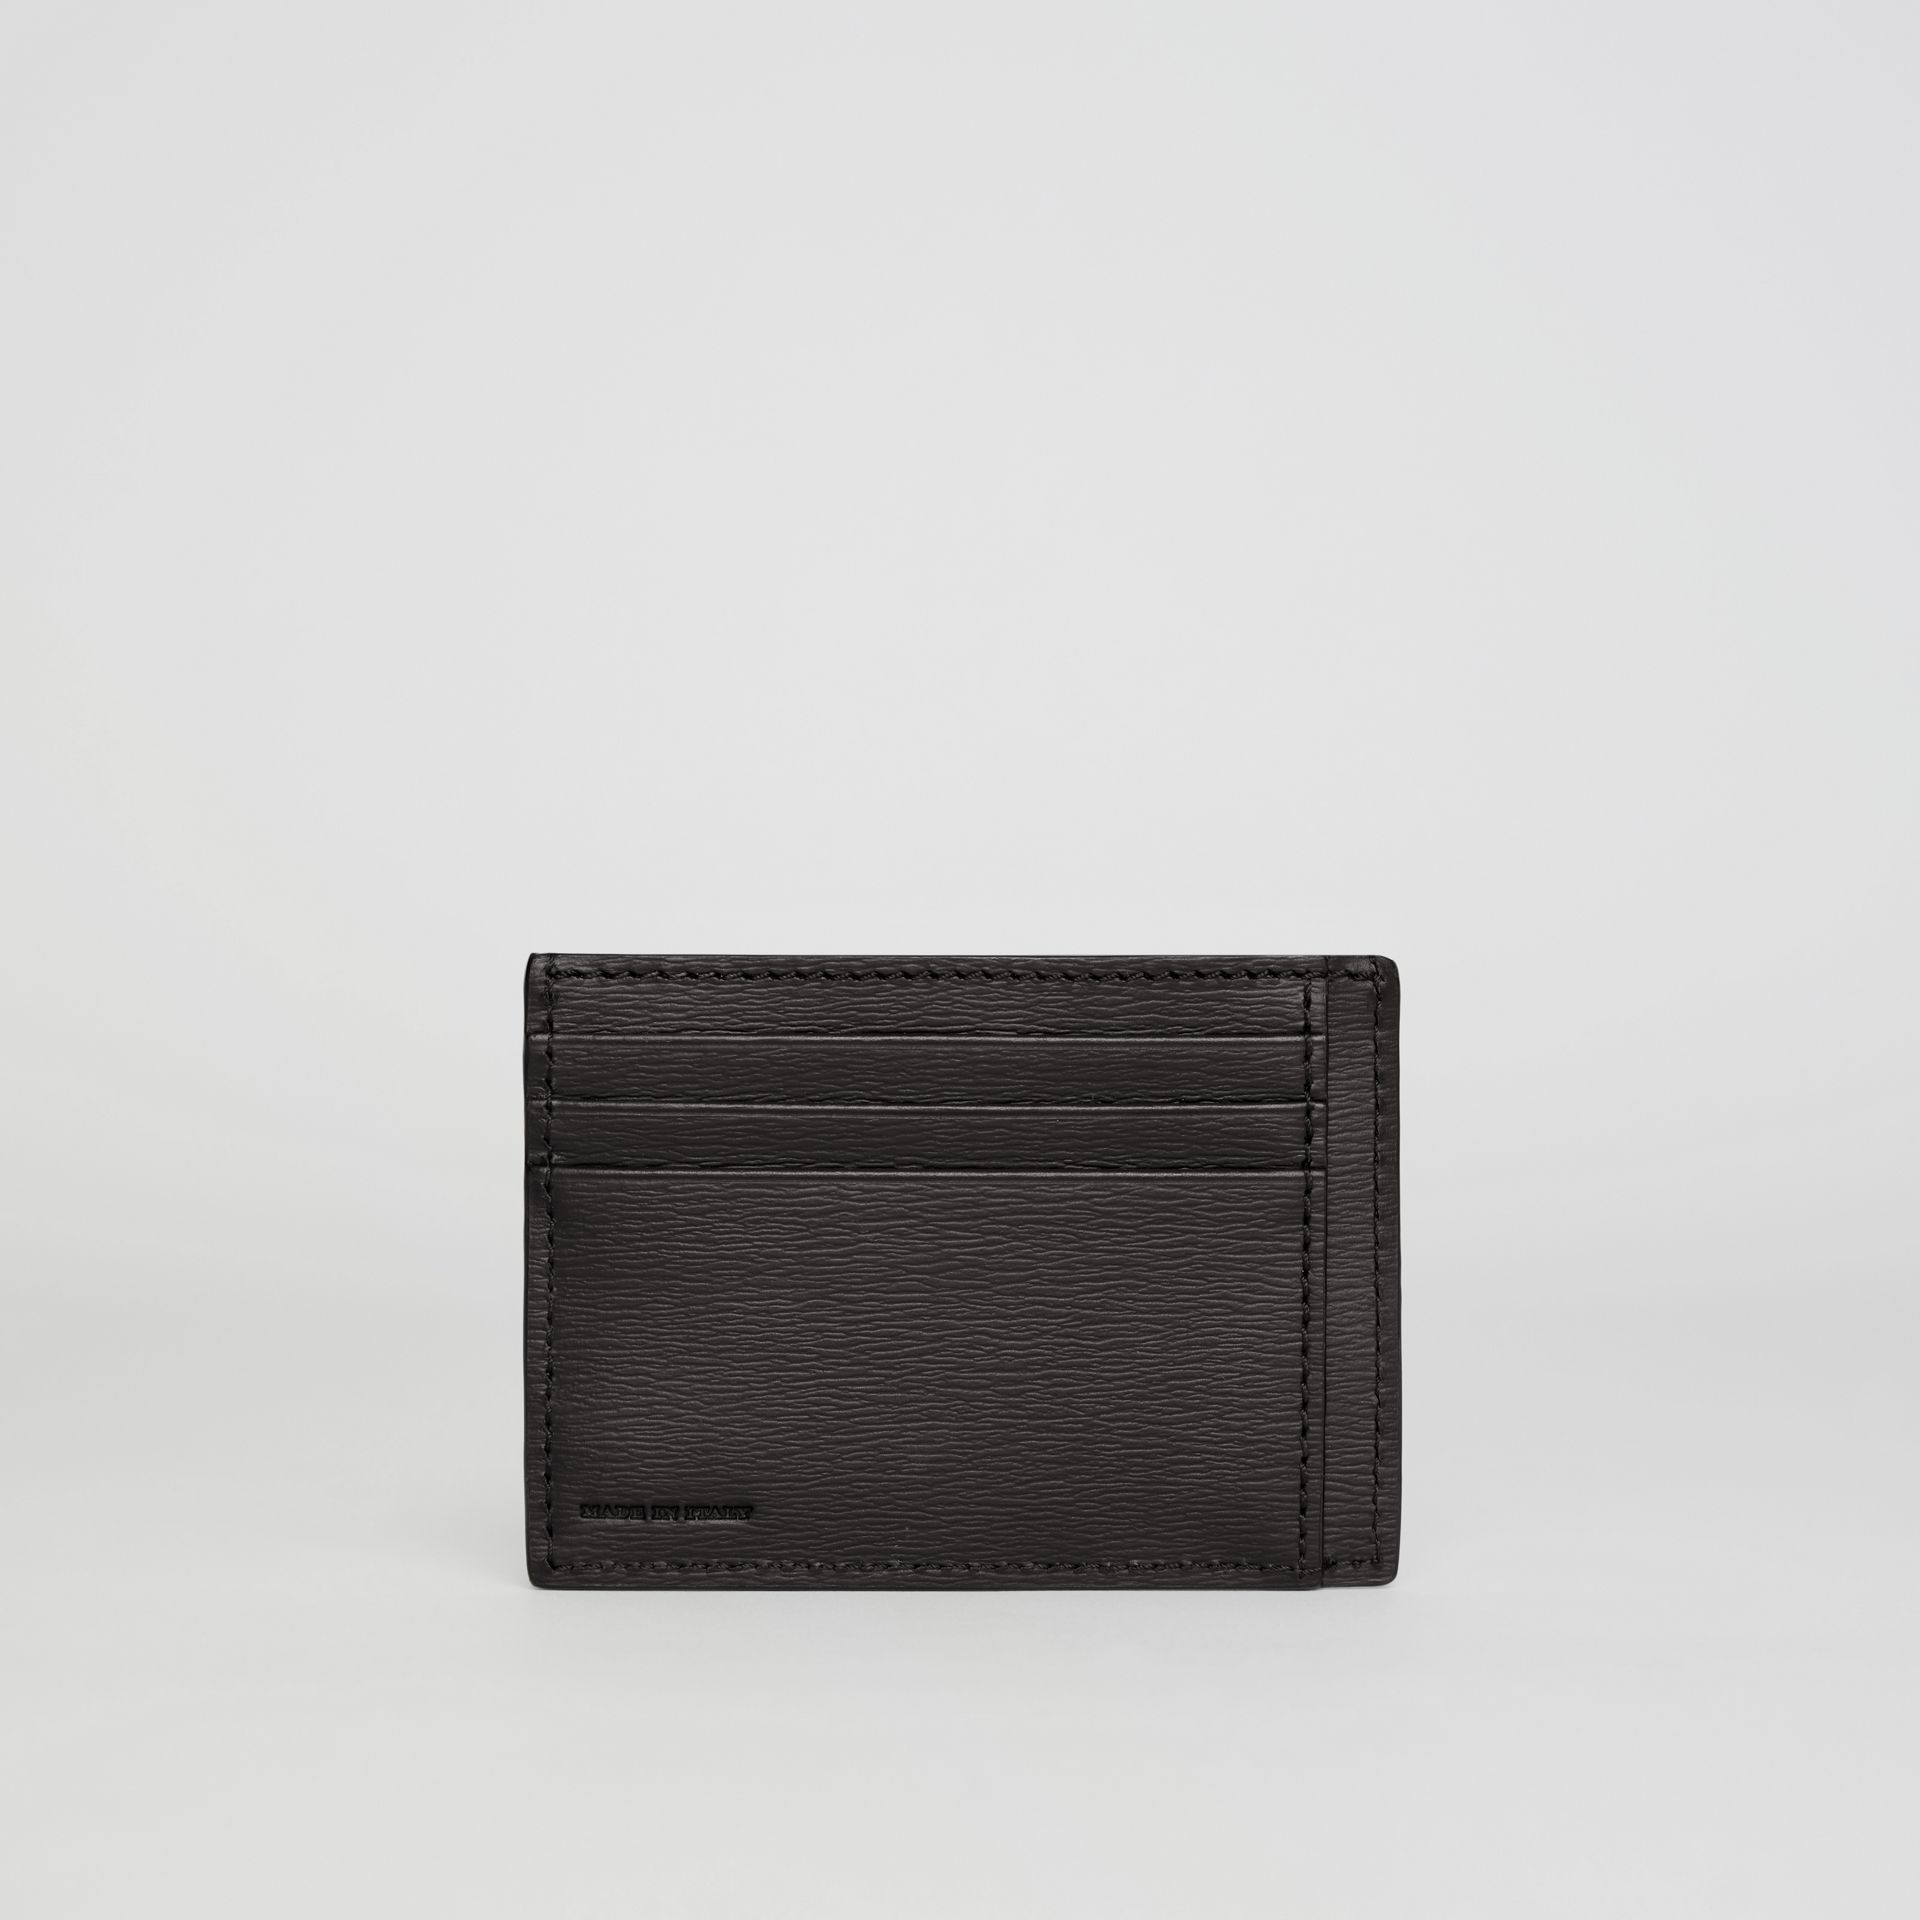 London Leather Card Case in Black - Men | Burberry - gallery image 2